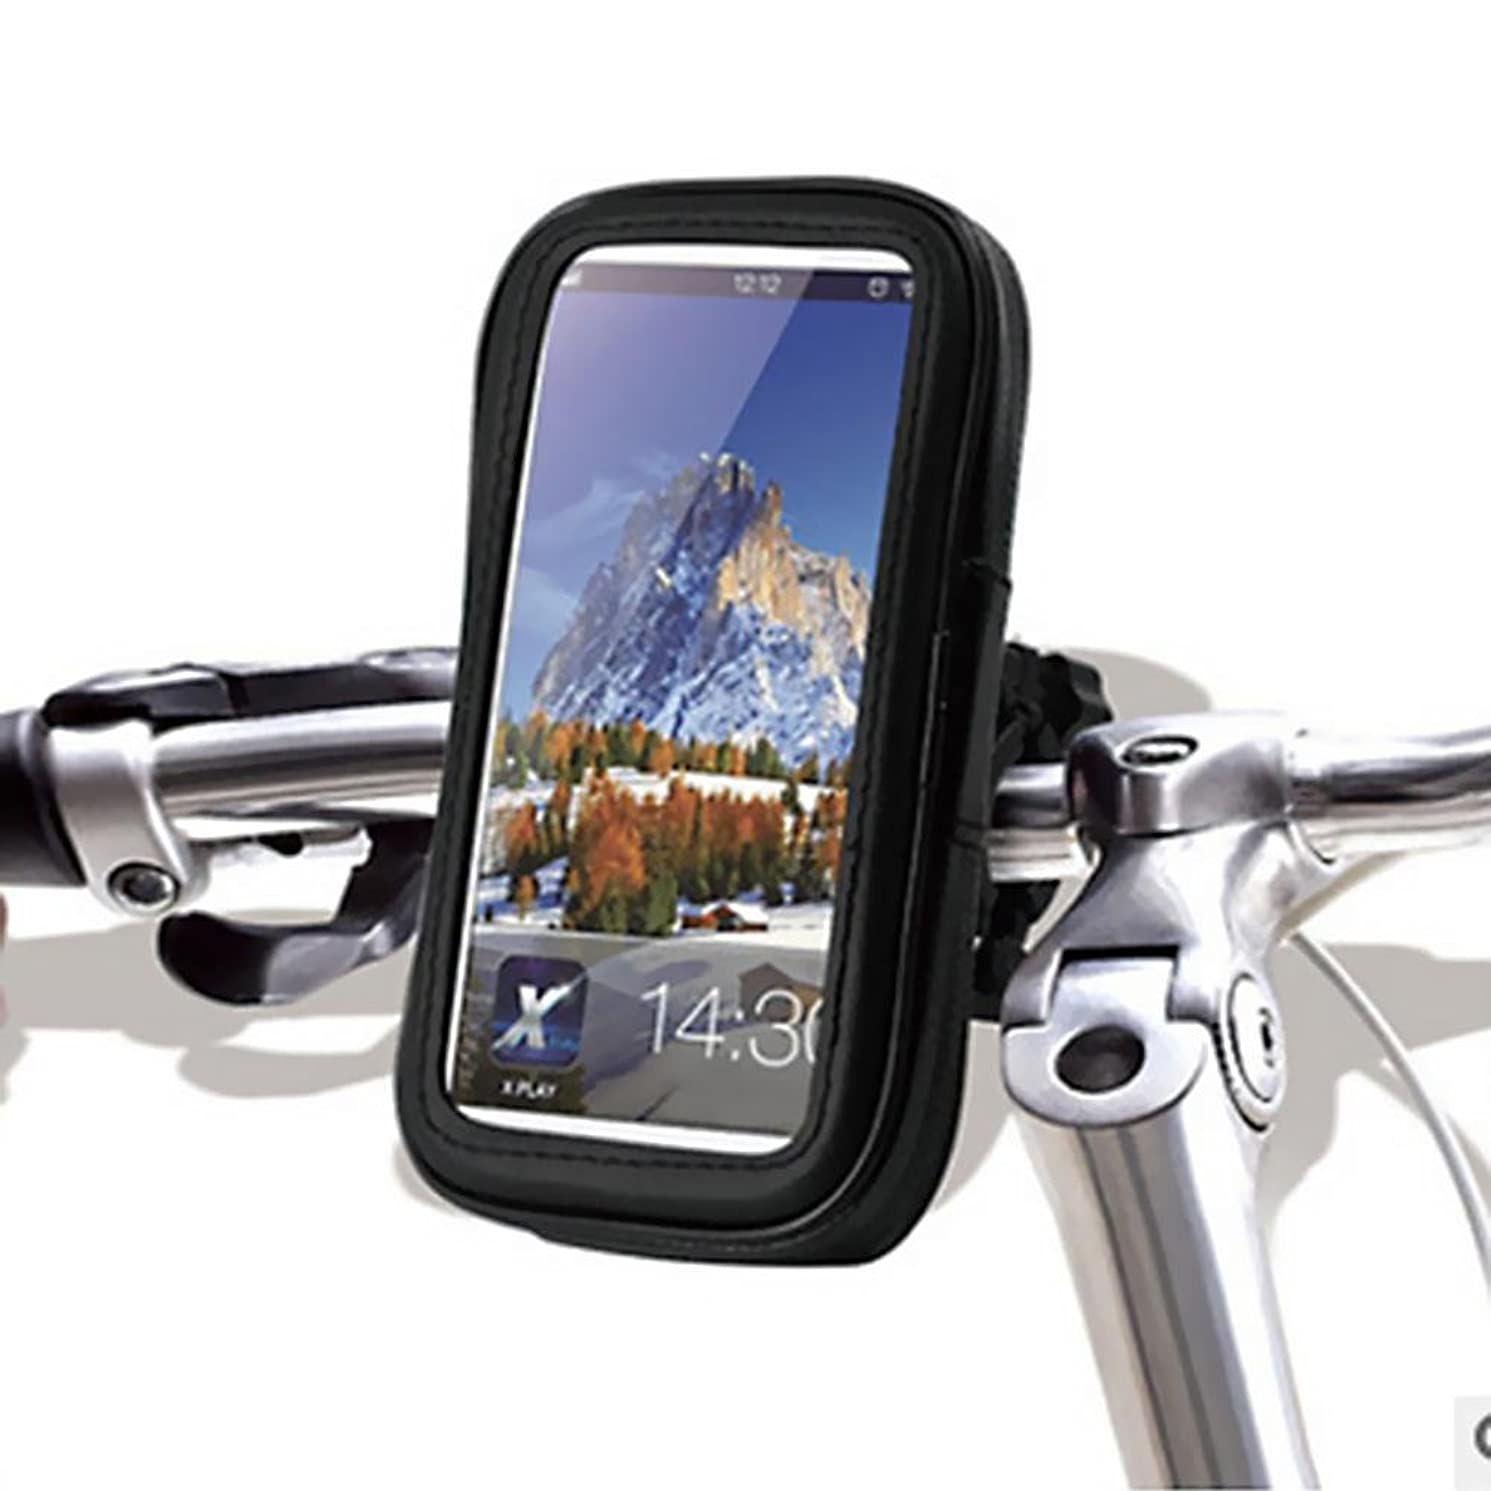 Bike Mount Phone Holder Pouch, Waterproof Bike Bicycle Phone Mount Holder with Water Resistant Cycling Frame Bag Transparent Touchable Pouch Case for Smartphones and GPS Devices